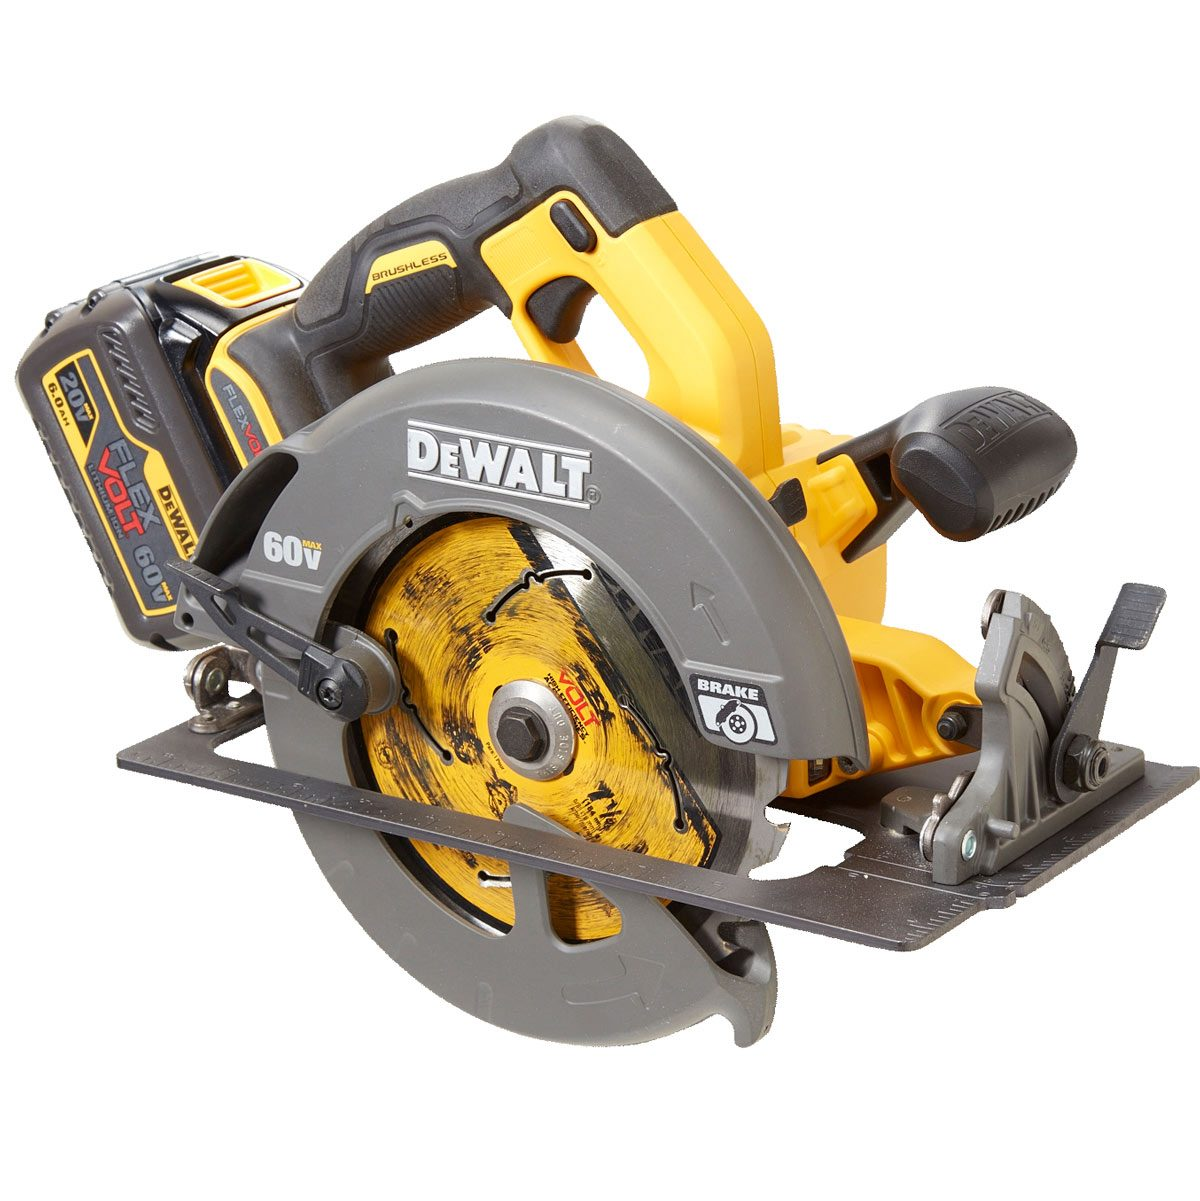 FH18DJF_583_52_038 brushless motor cordless circular saw